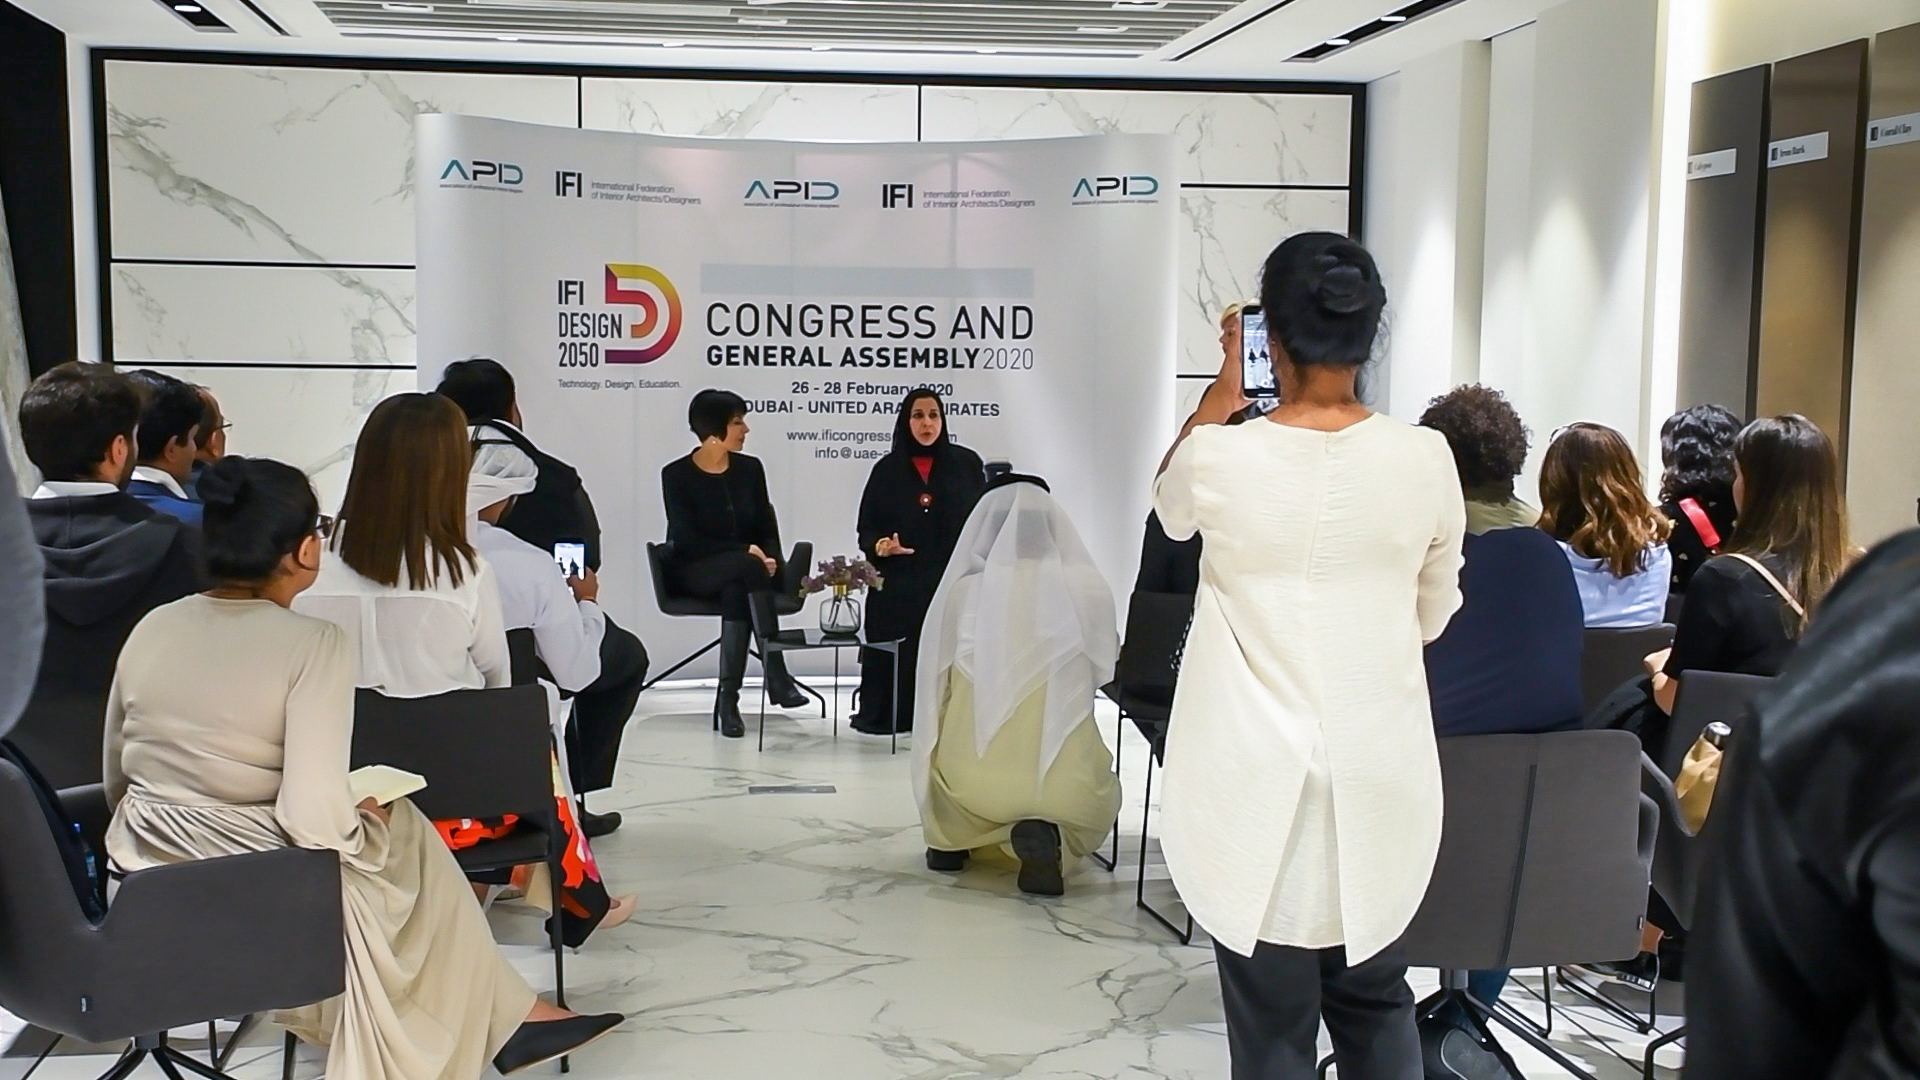 IFI & APID Join Hands to launch the first Middle East Congress